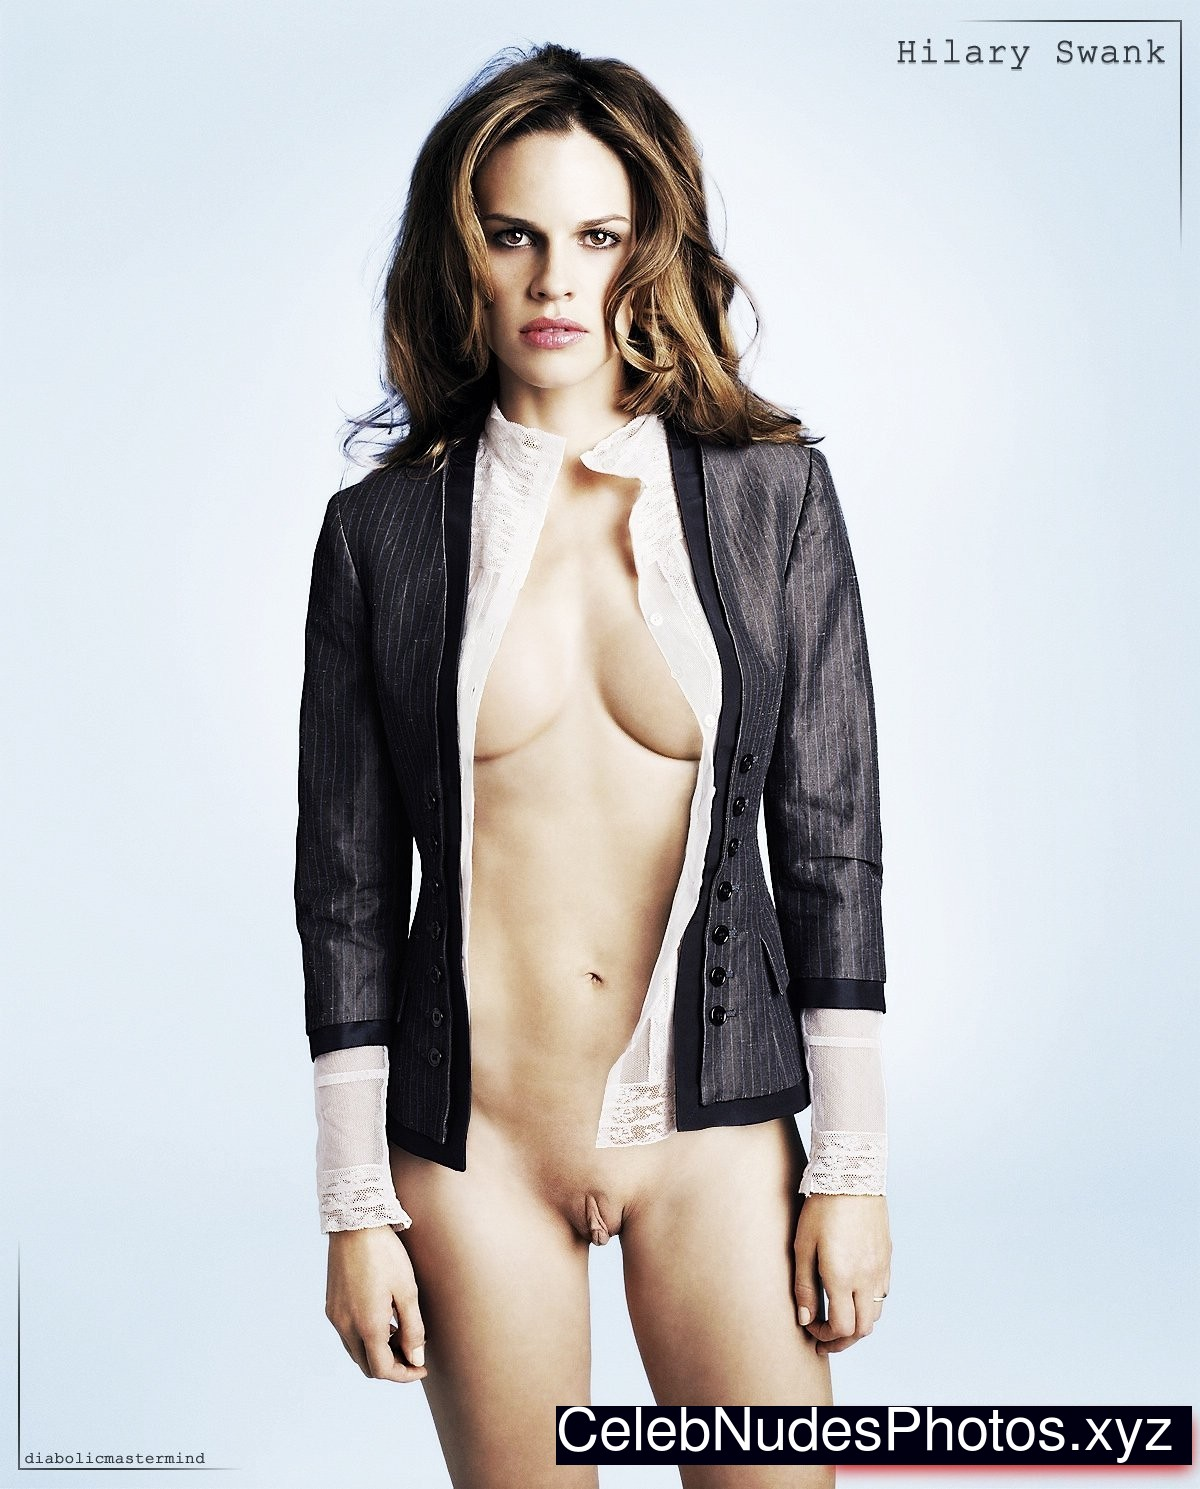 from Billy hilary swank hot and nude